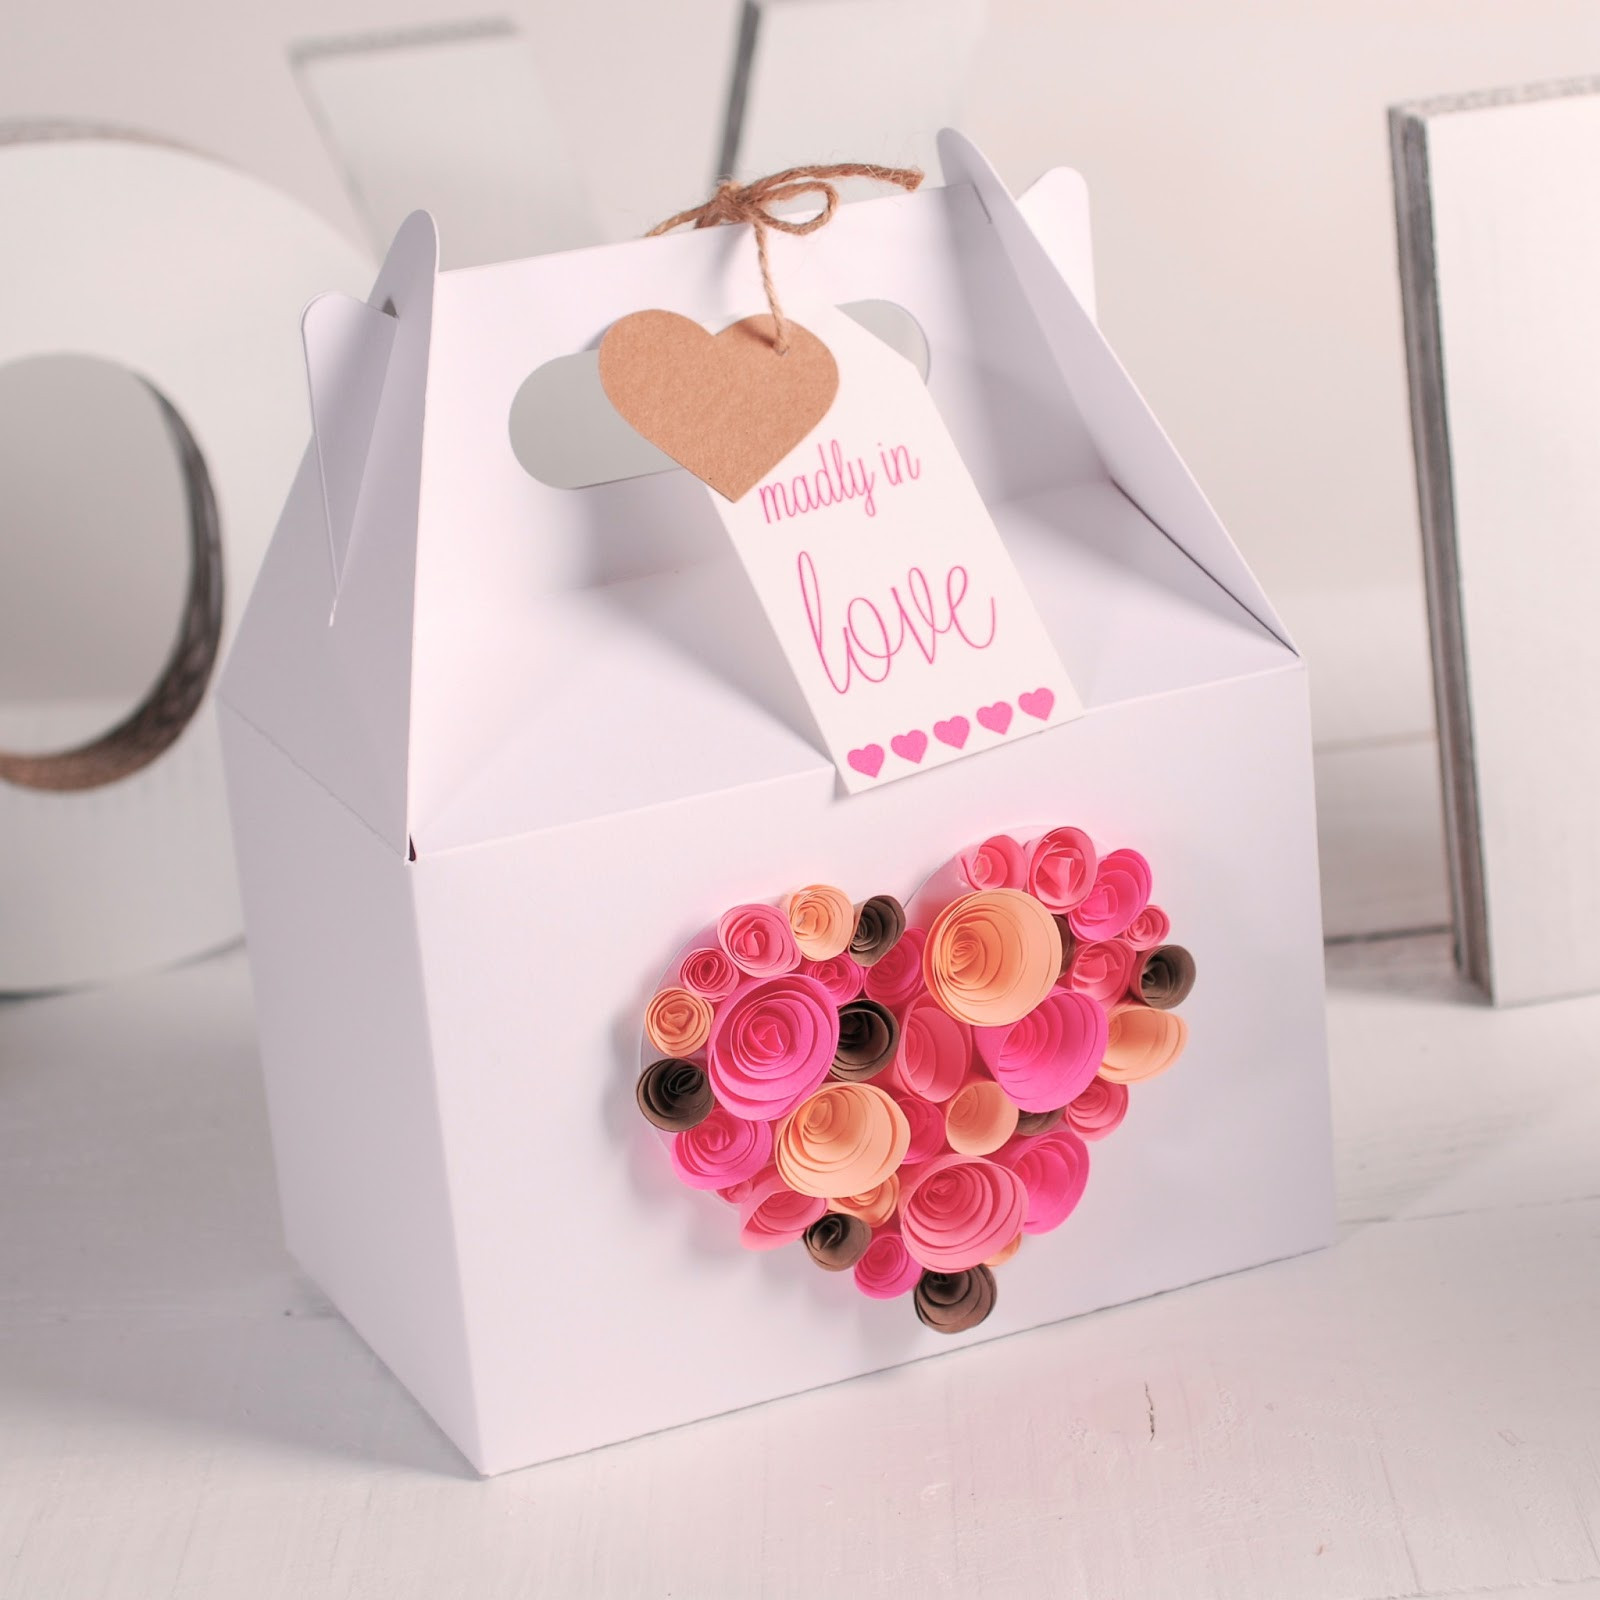 Valentine Day Gift Wrapping Ideas  Gift wrapping ideas for Valentines Day How to decorate a